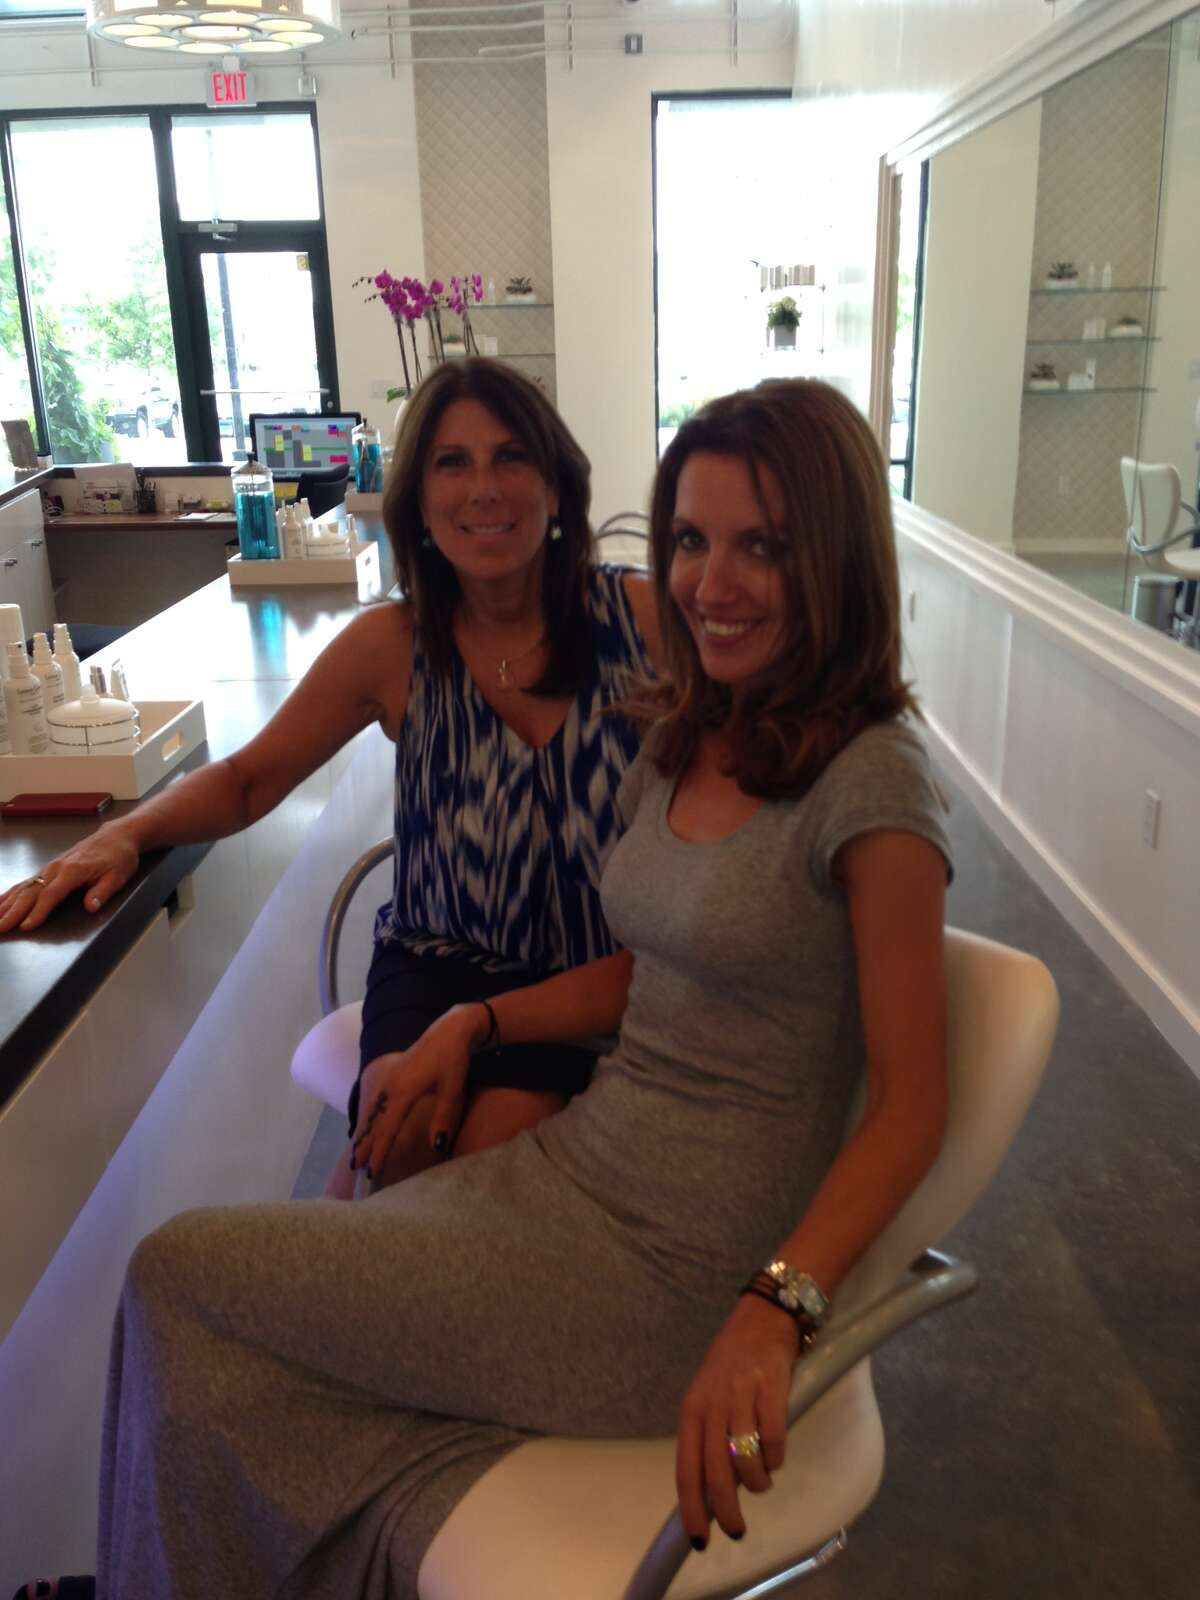 Quinn Caravella and Liria Heidenreich at their new salon The Style Bar in Stamford's Lockworks Building in Harbor Point.